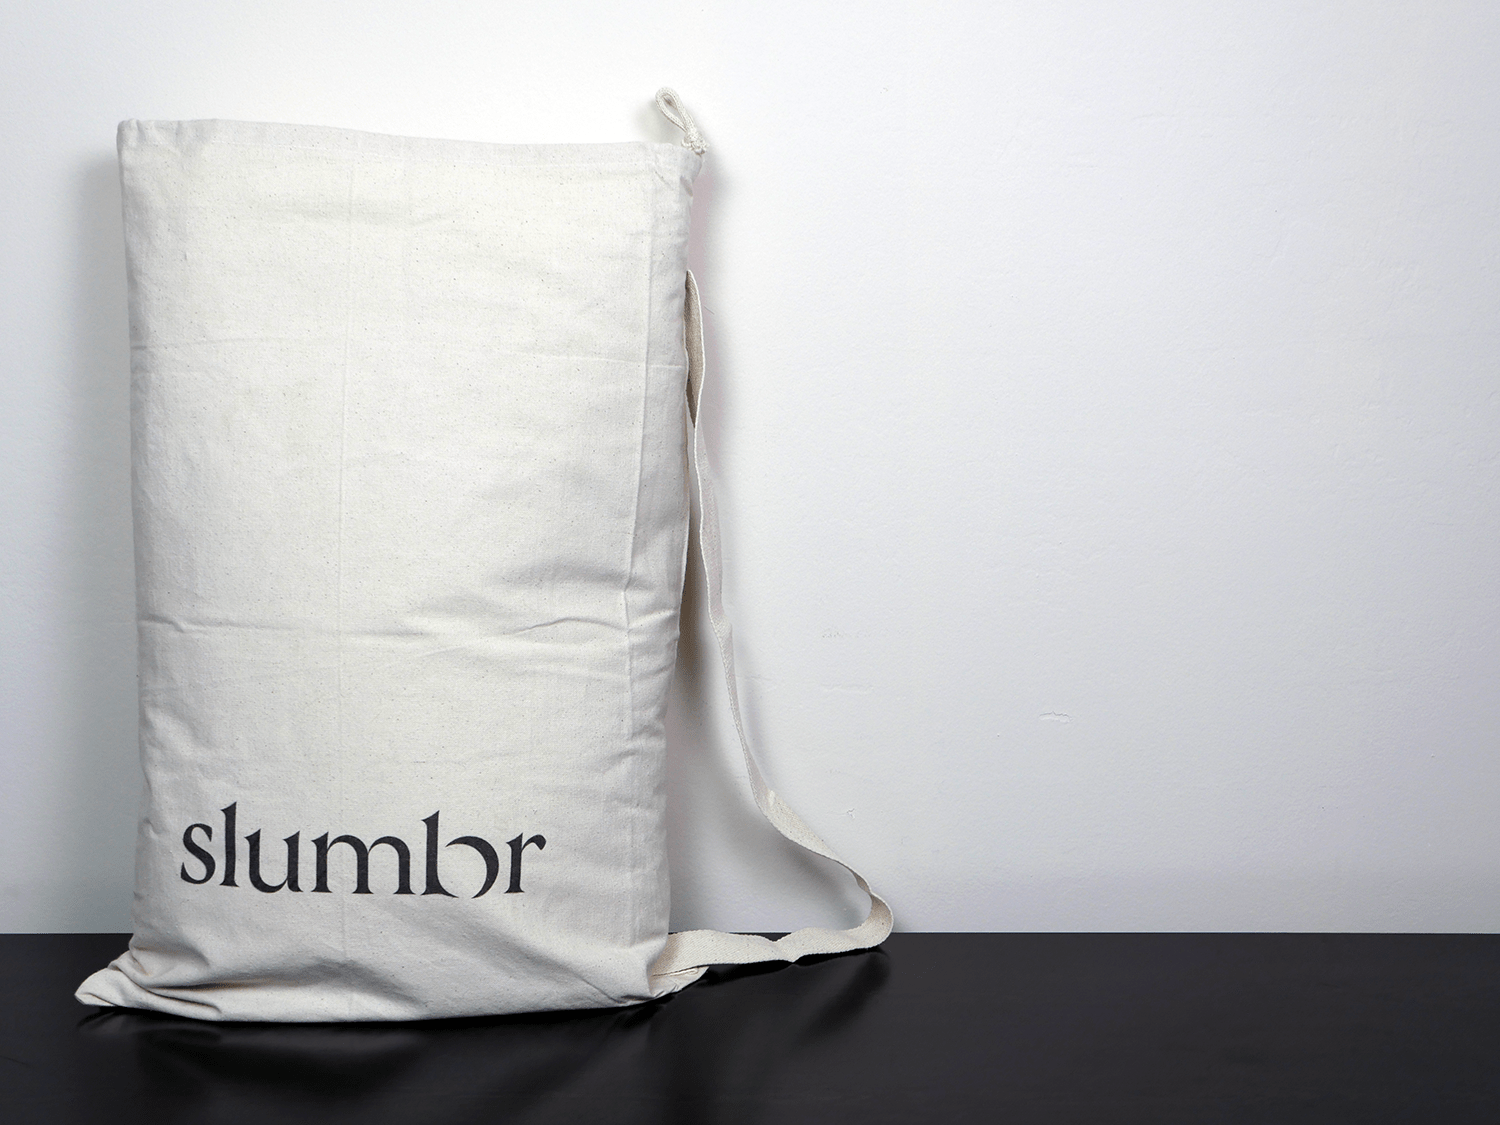 Original packaging of a Slumbr pillow